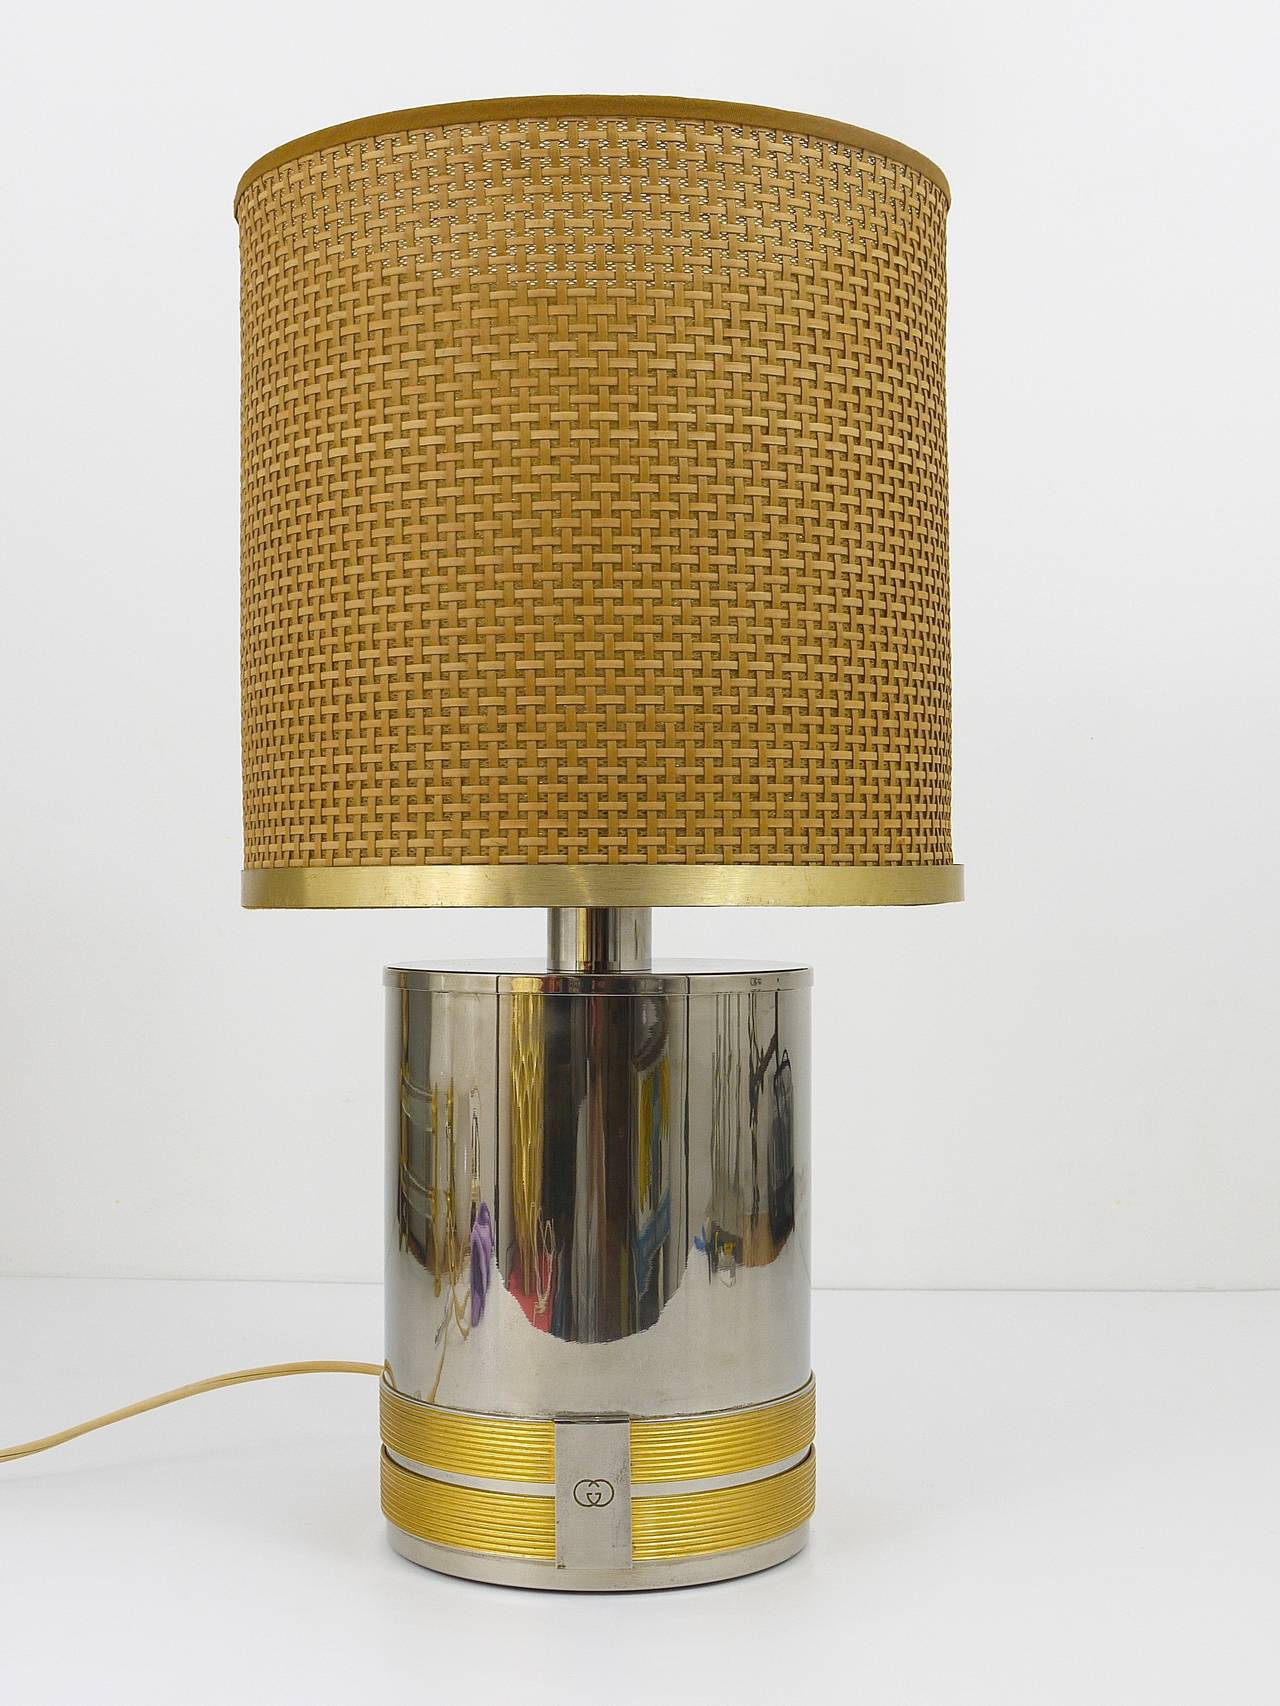 Outstanding Original Gucci Italy Table Lamp 1970s At 1stdibs